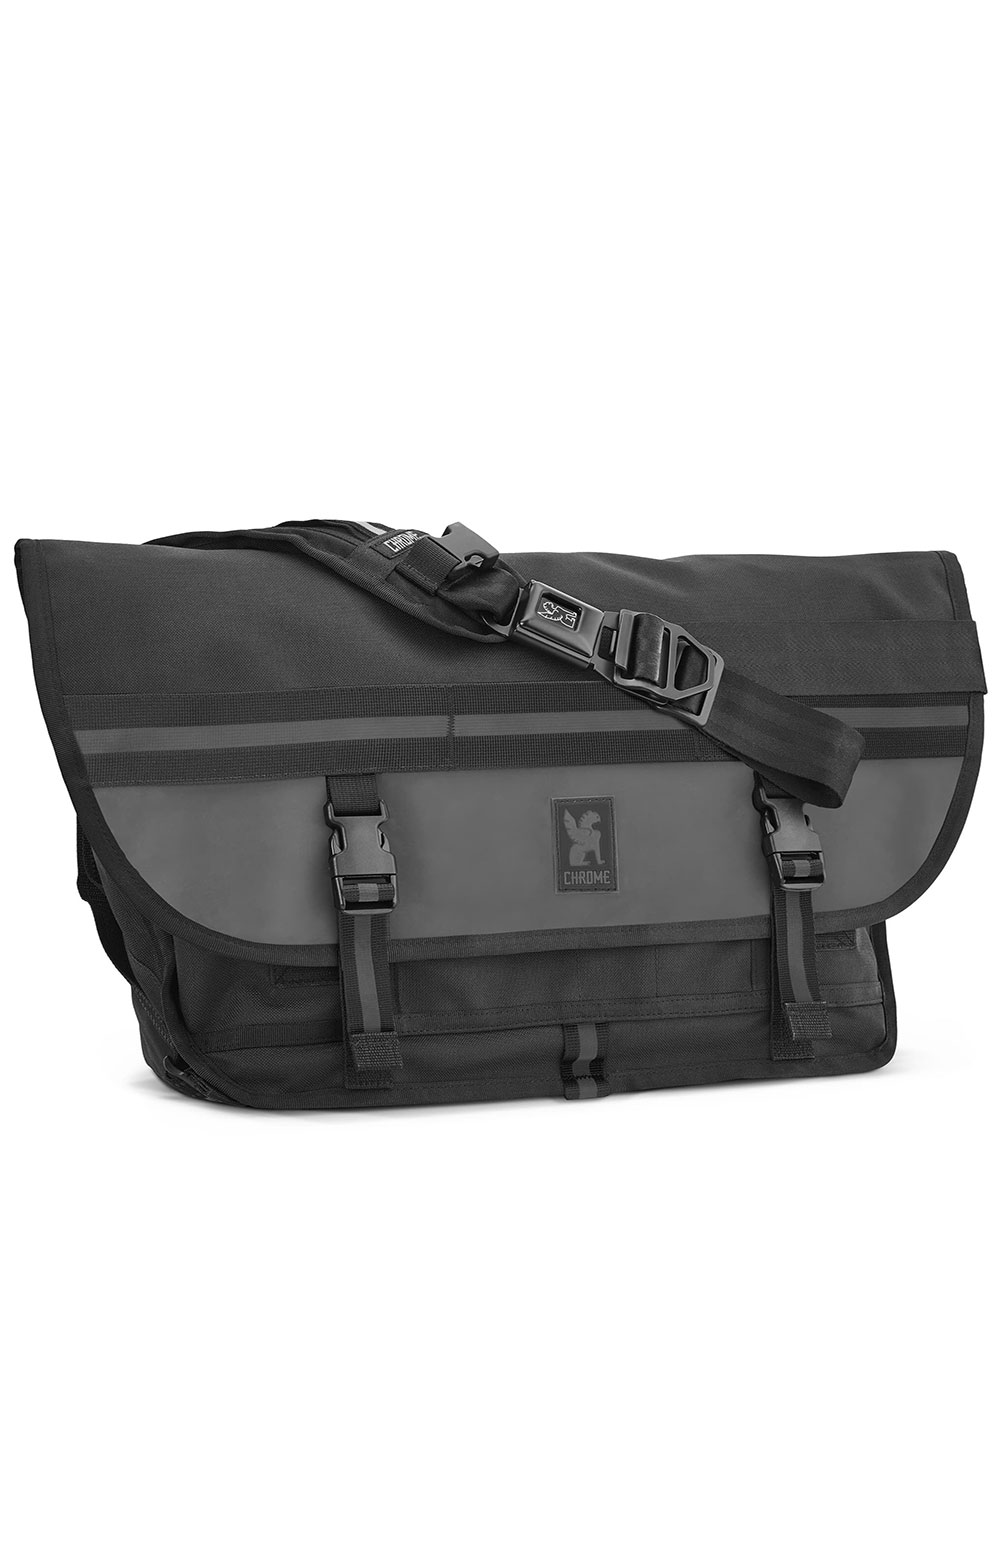 (BG-002-NI) Citizen Messenger Bag - Night